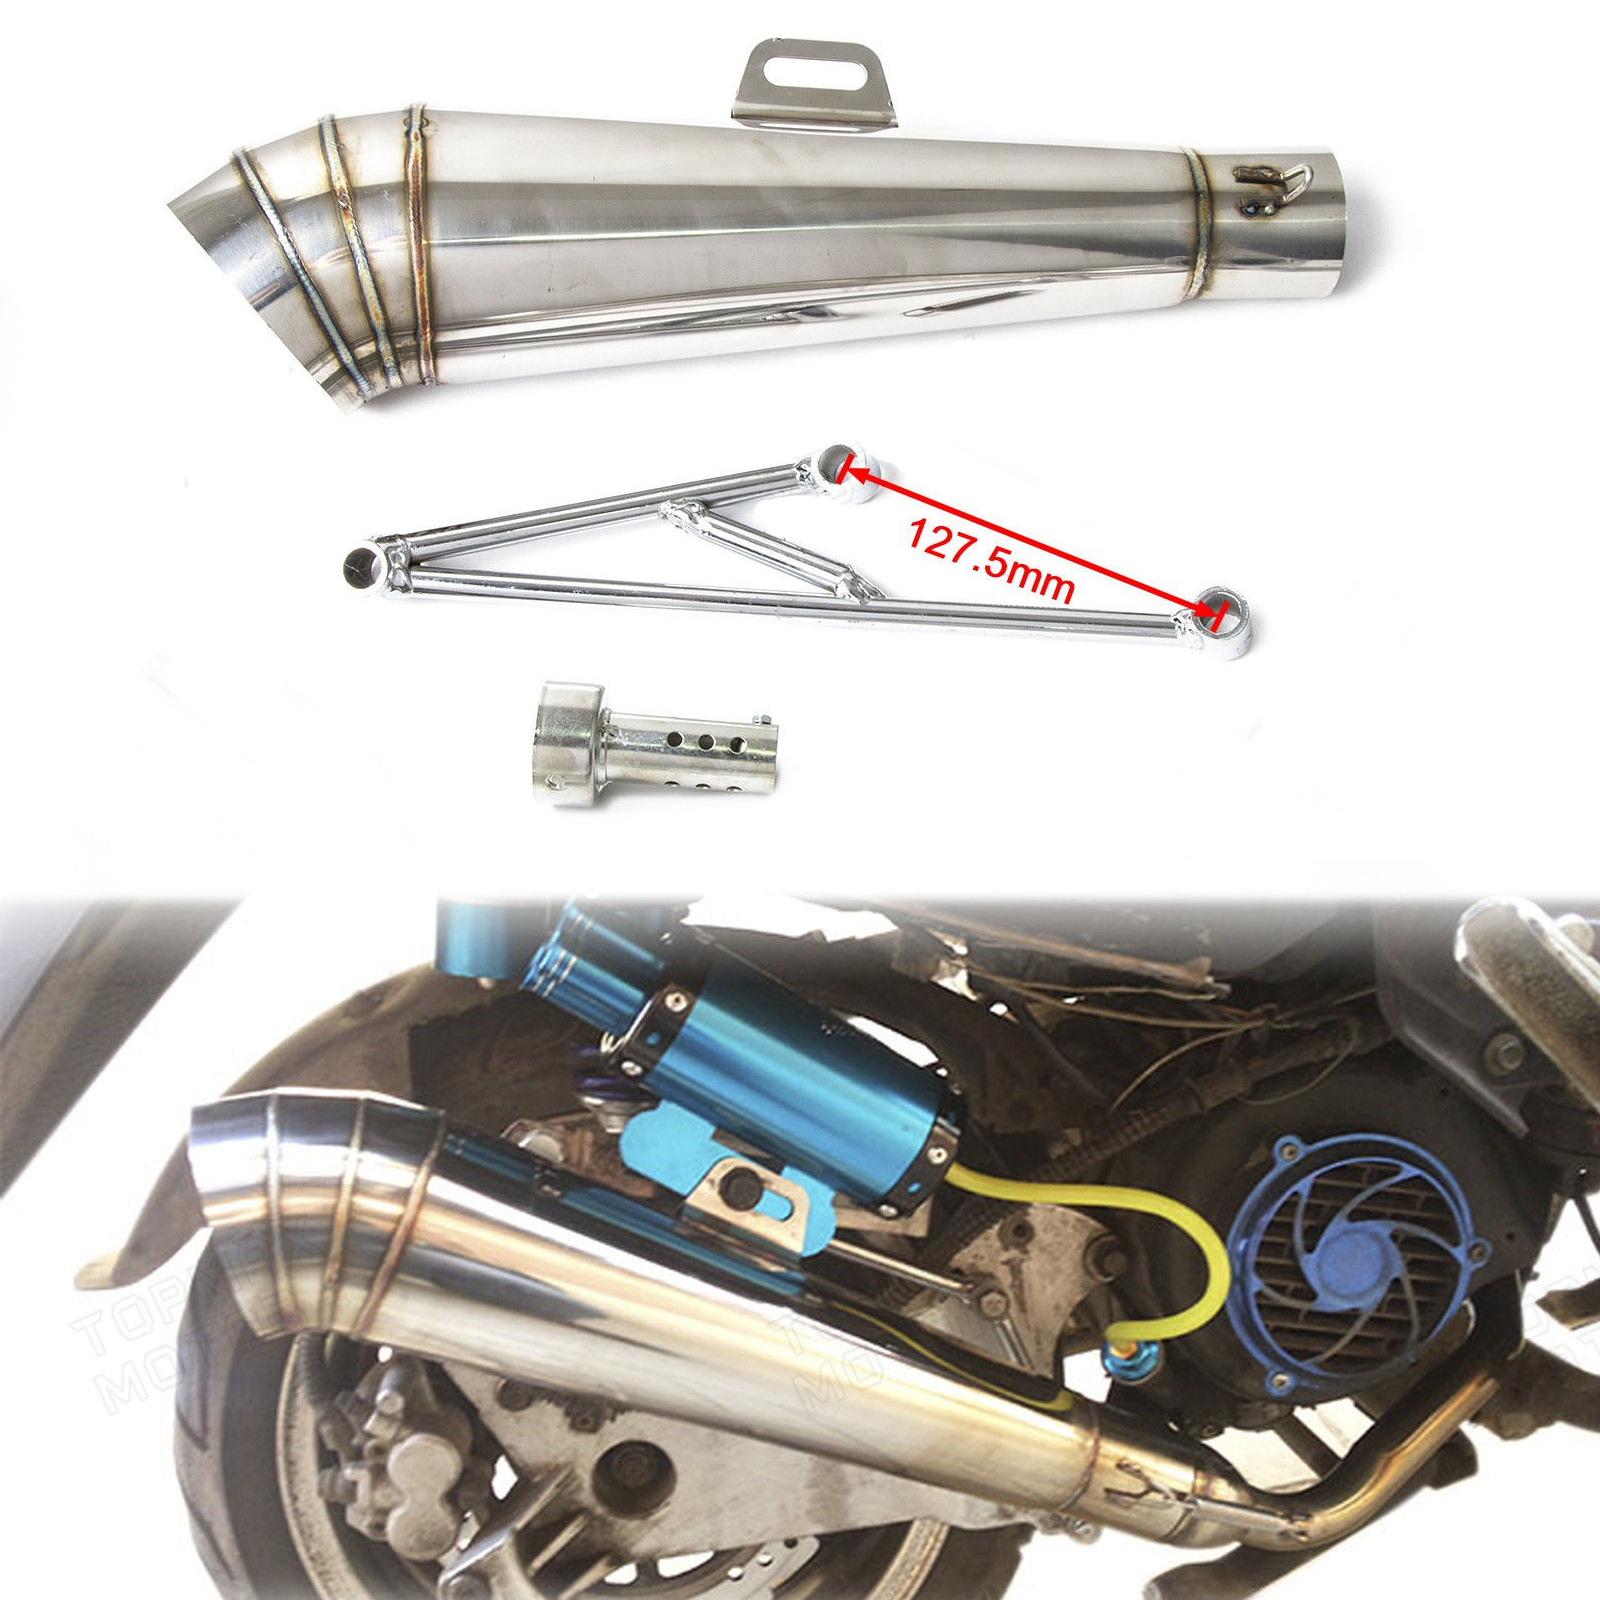 Exhaust Muffler System header exhuast pipe GP style muffler For Honda Ruckus / Zoomer / GY6 125cc or 150cc Scooters